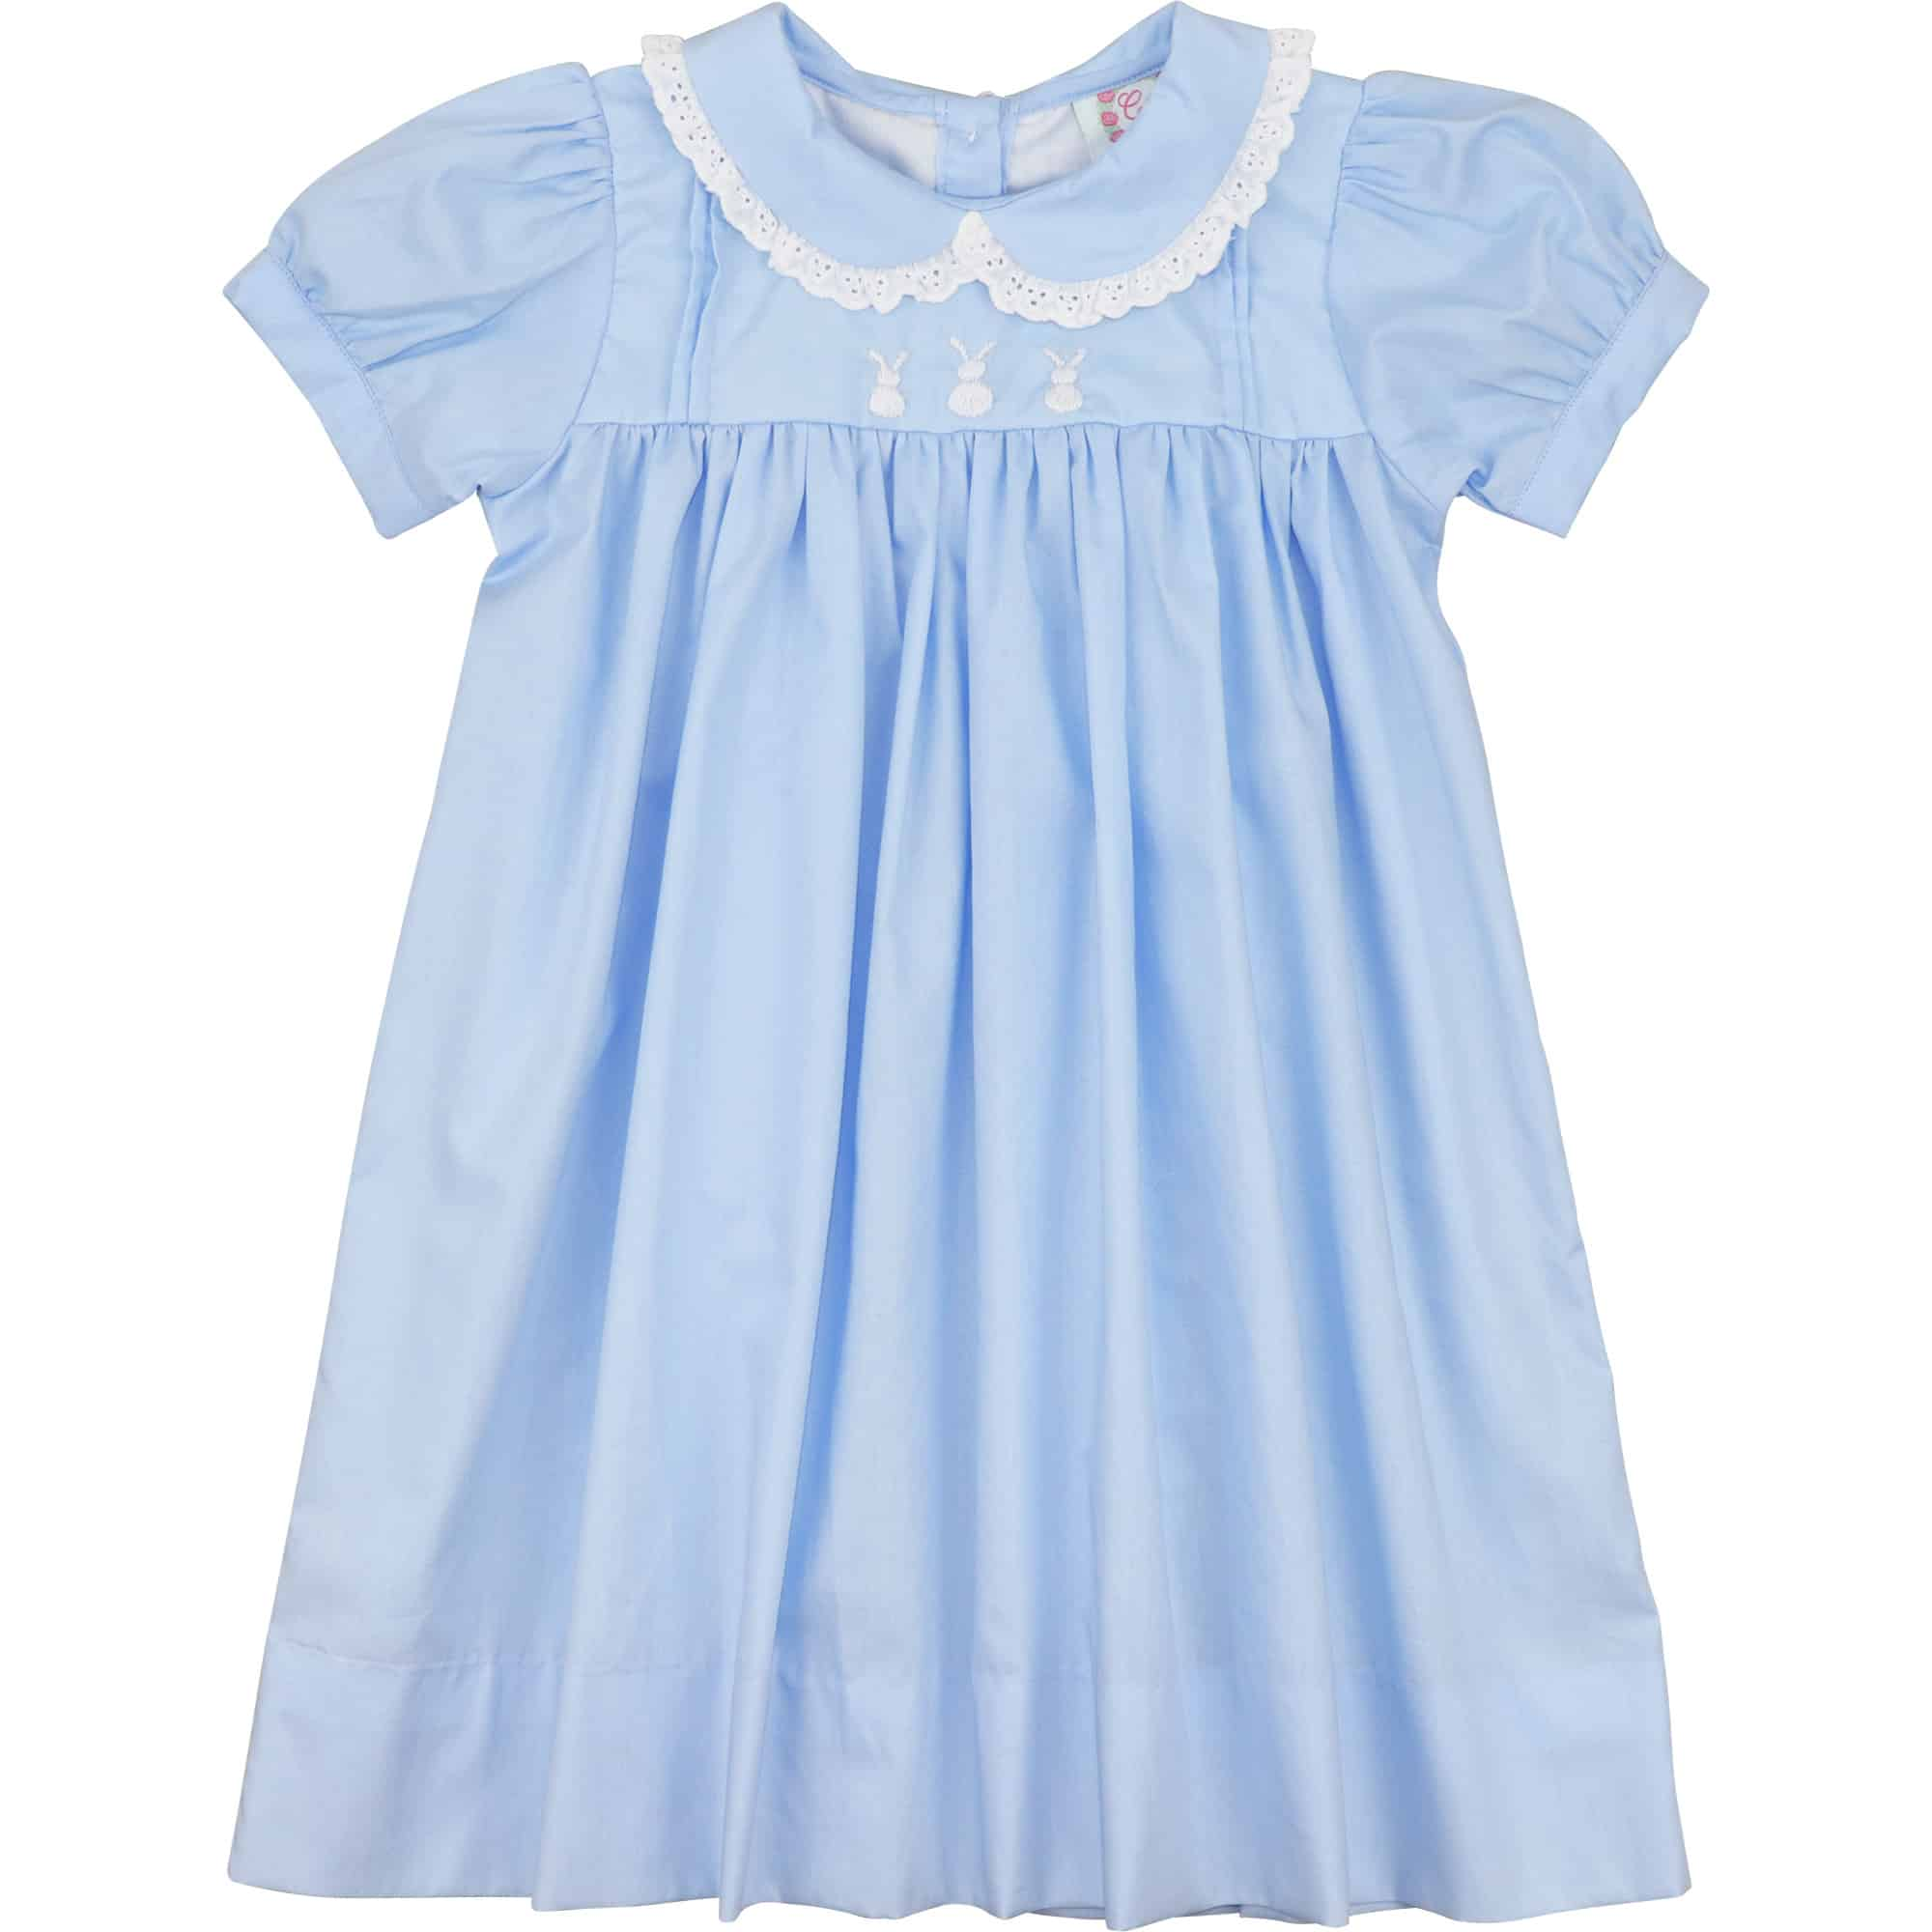 Blue Embroidered Bunny Dress